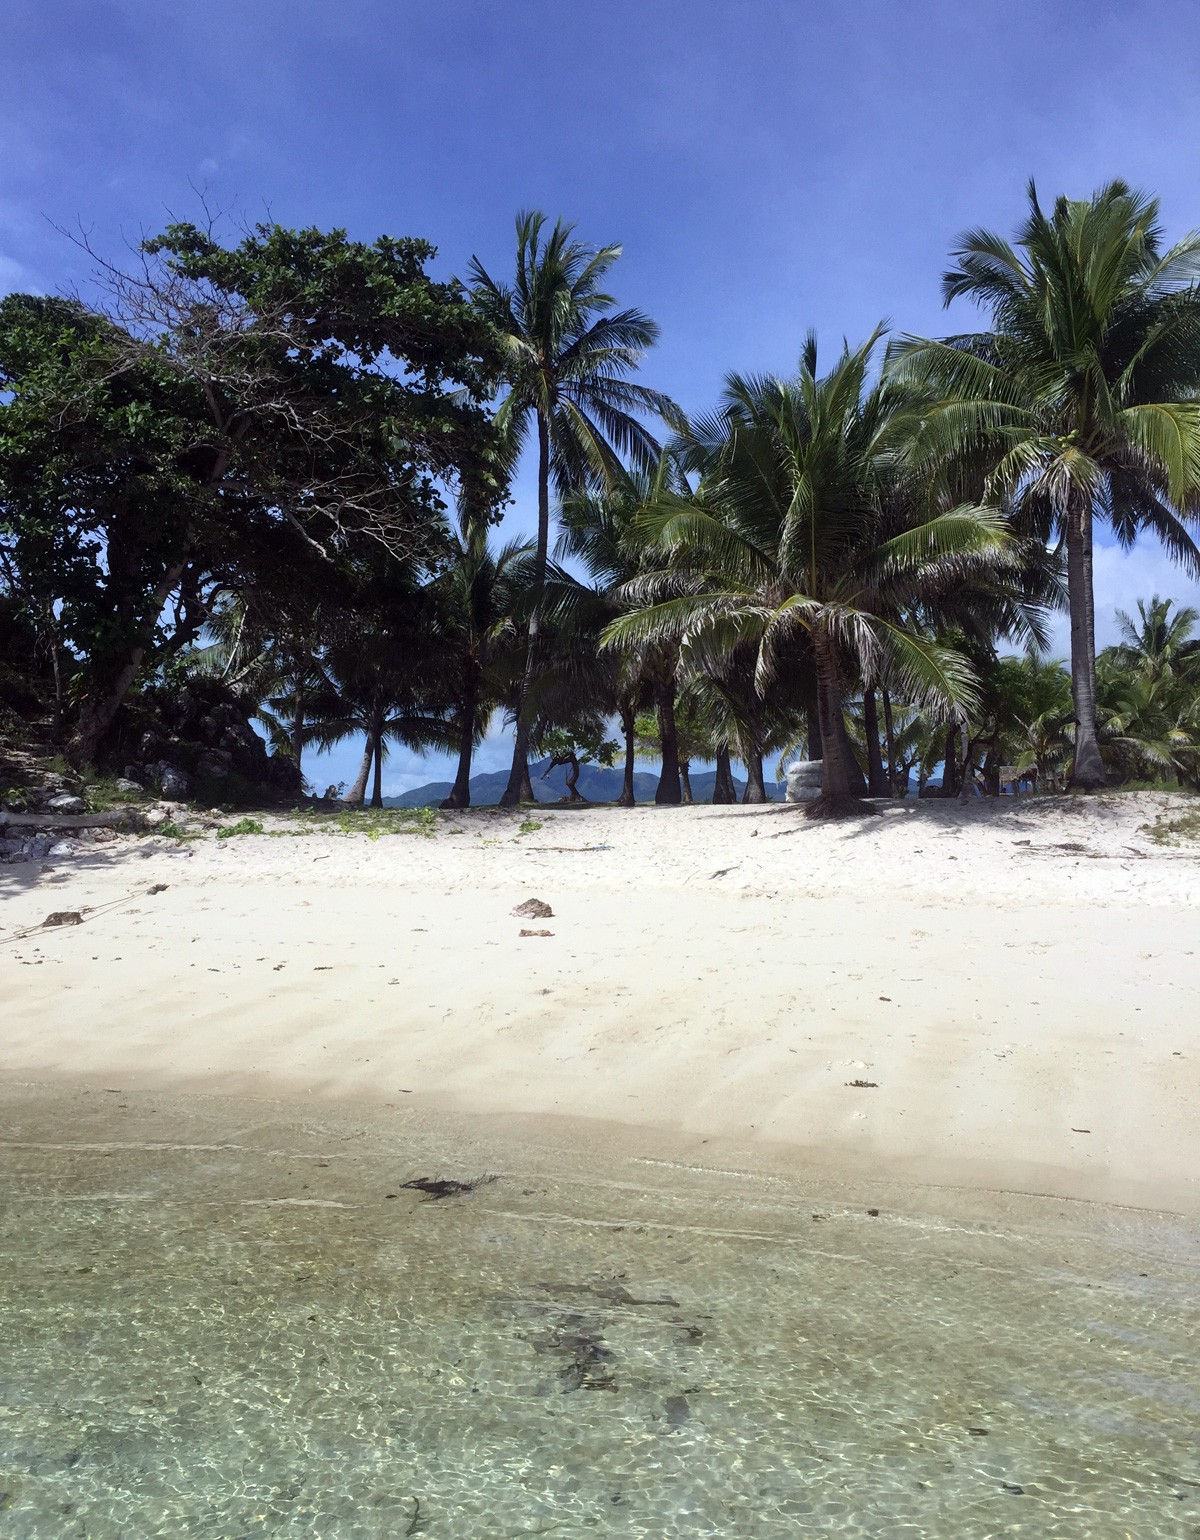 Malcapuya island with palms in Palawan, Philippines